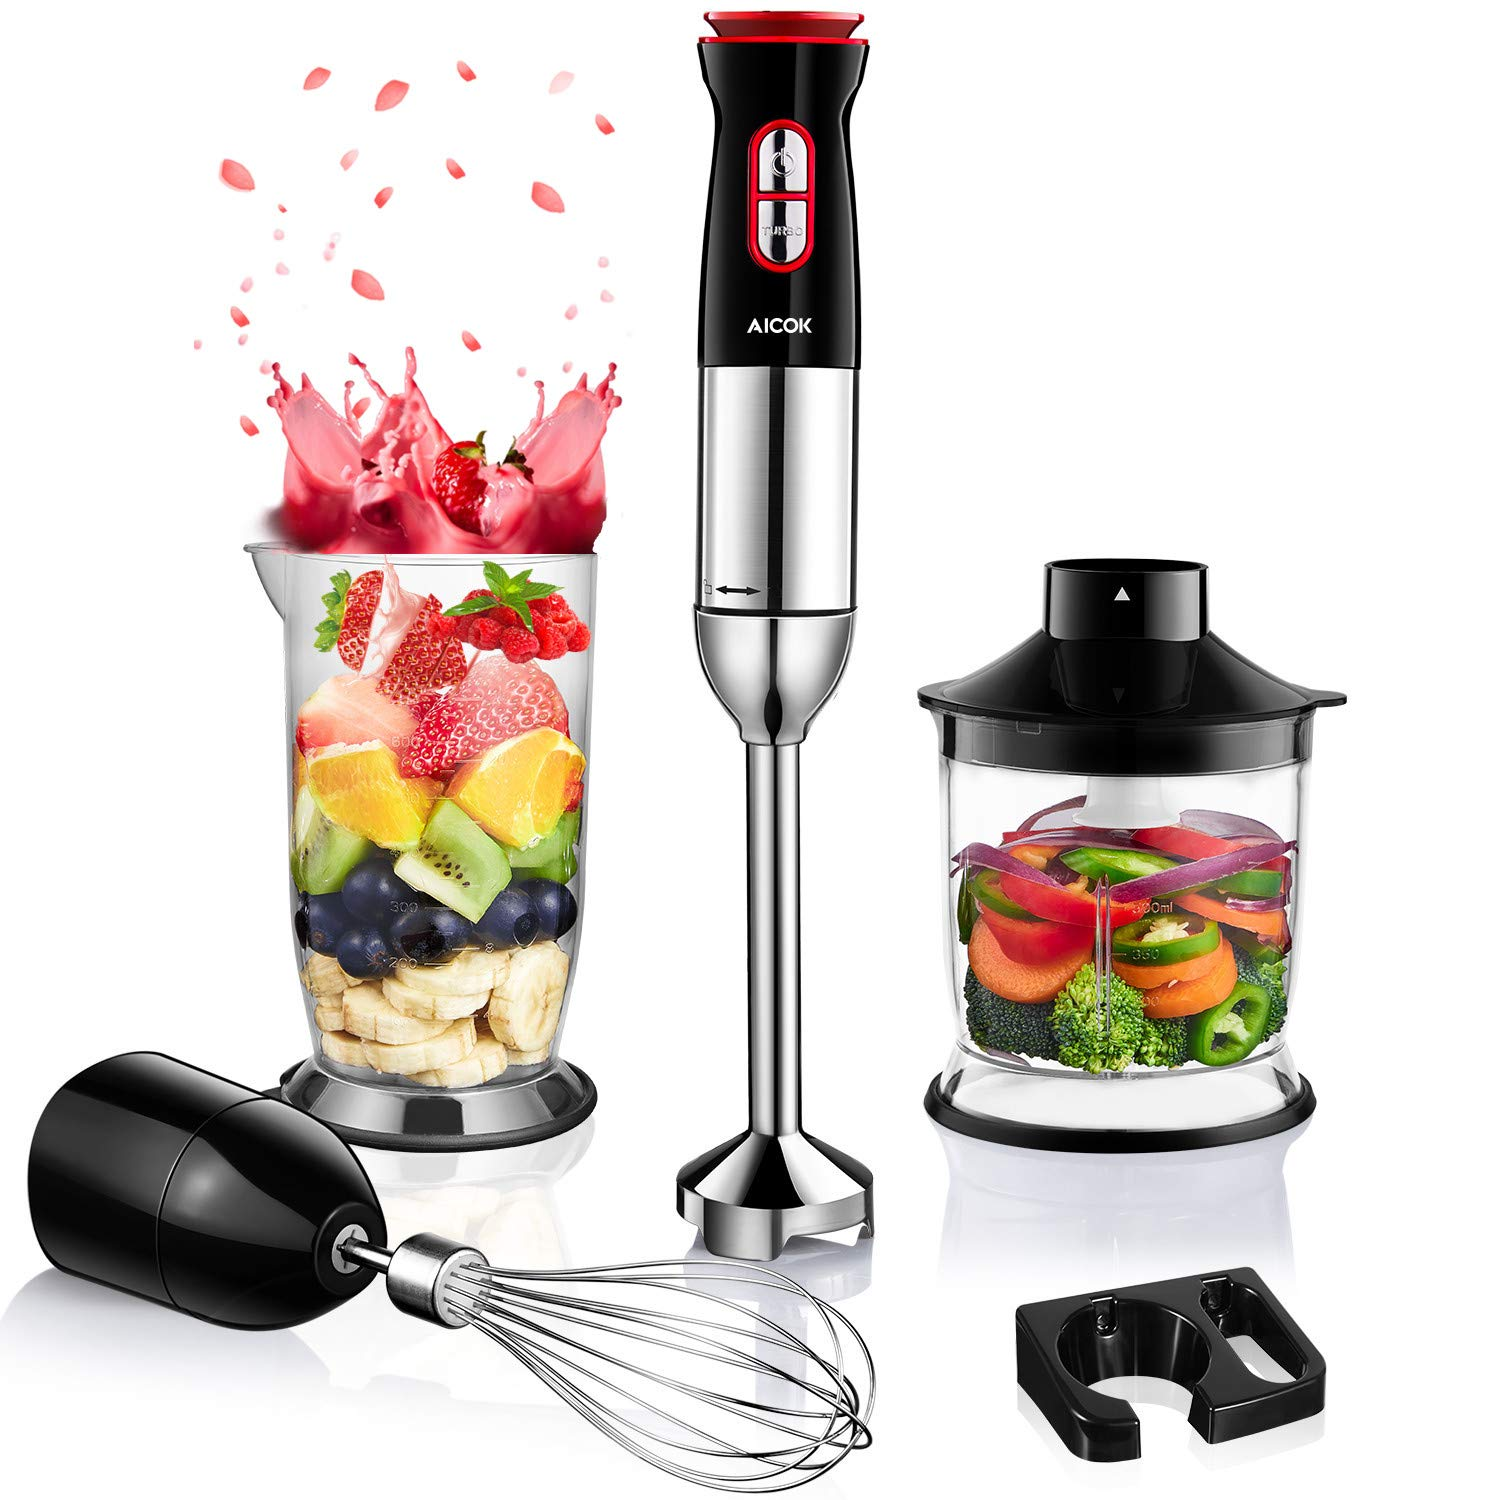 Details about Hand Blender 5 in 1 Immersion Electric Stick Kitchenaid Mixer  Ultra-38000RPM